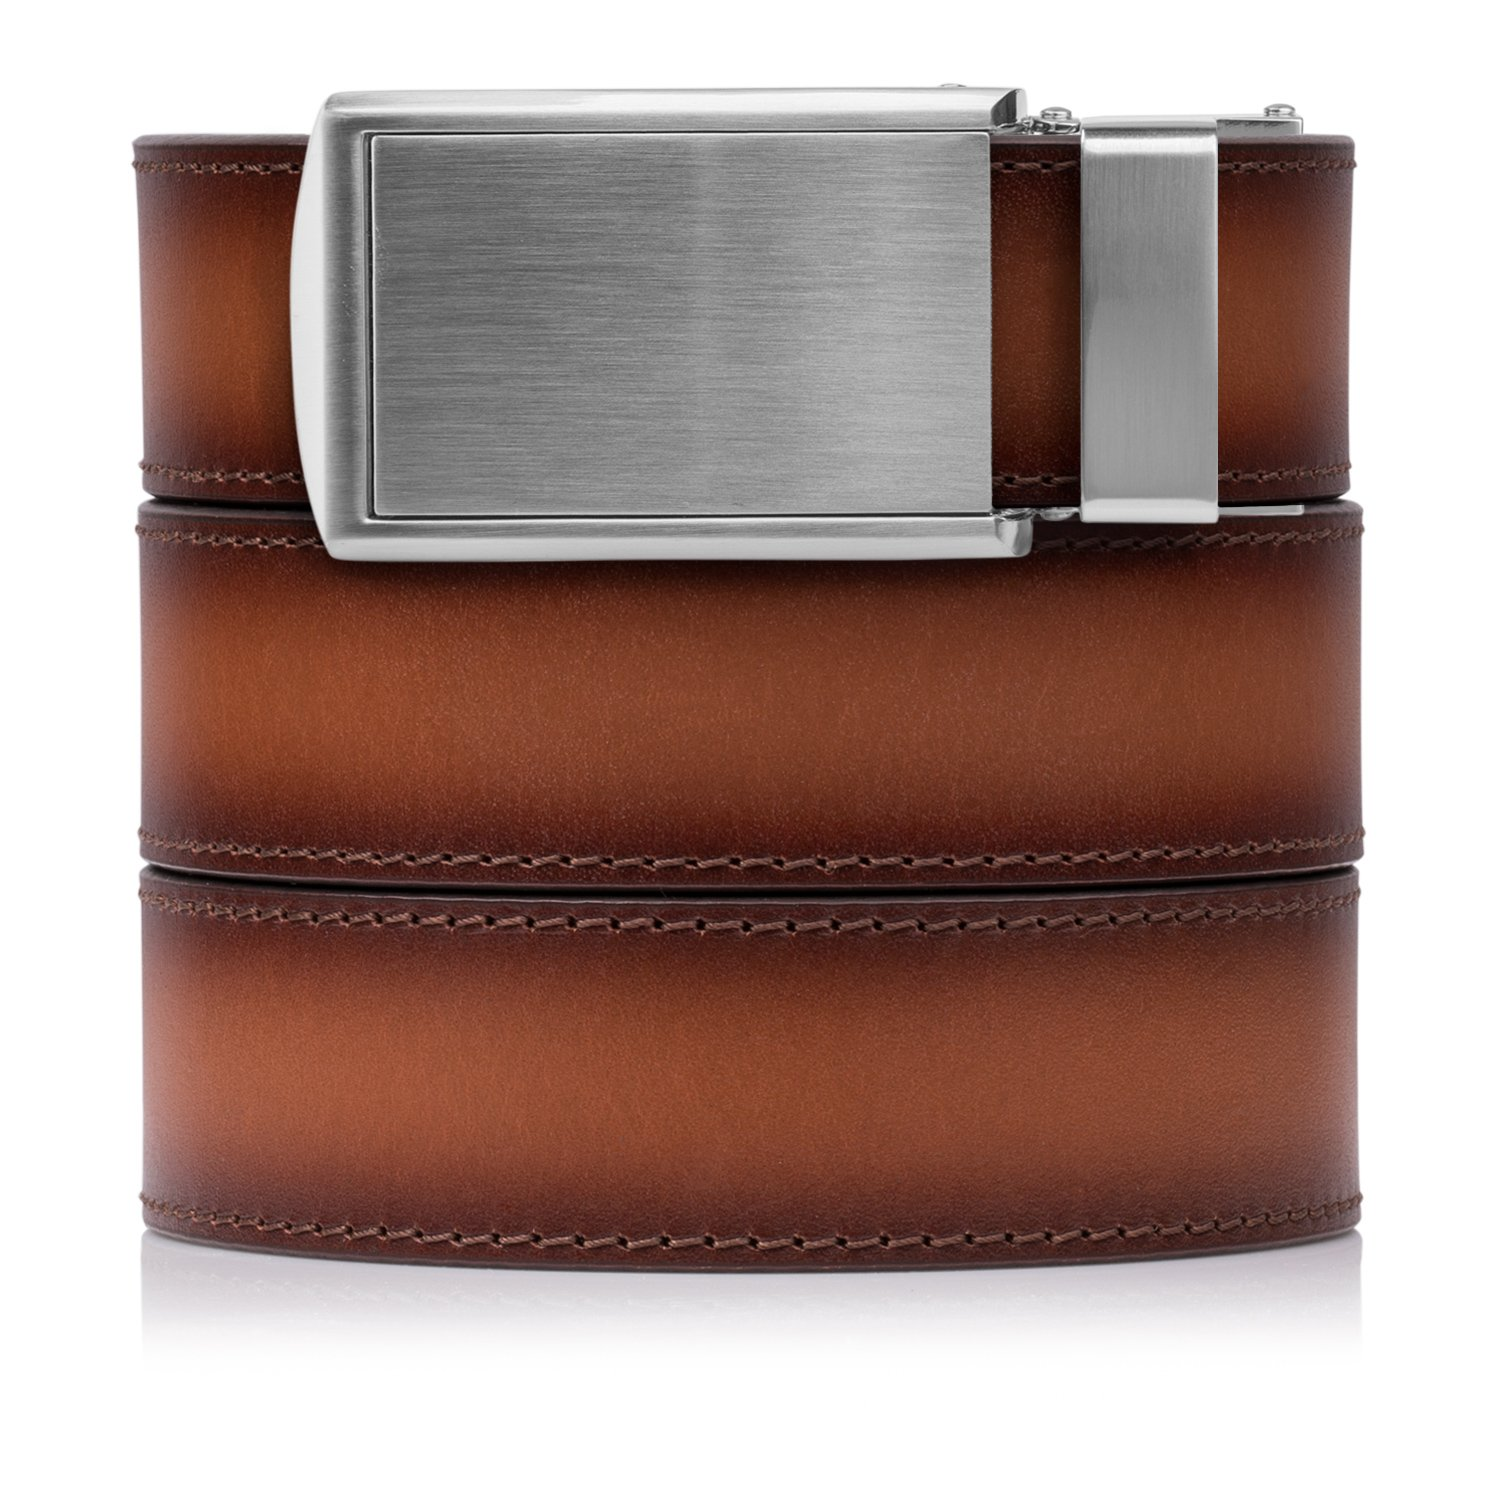 SlideBelts Full Grain Leather Belt (Cognac with Silver Buckle, One Size)